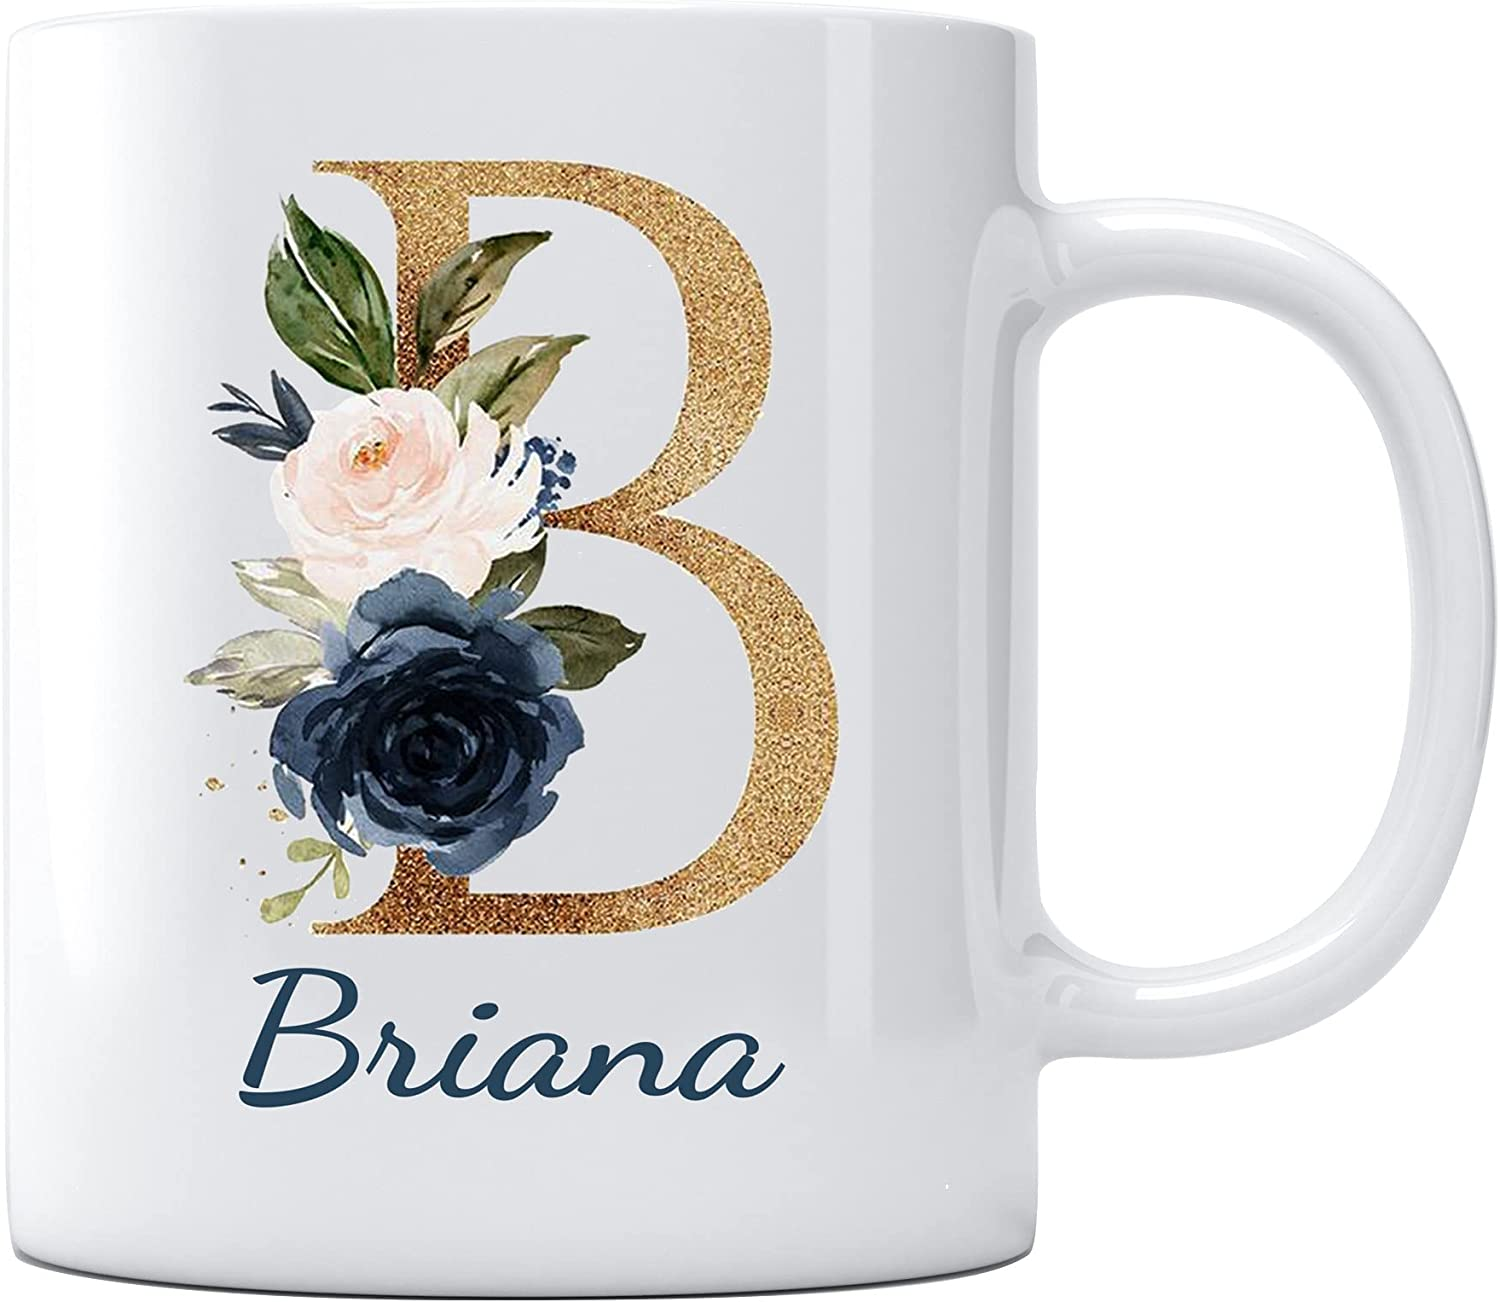 Mother's Day 2021 Cup with Name Briana Unique Mothers Day Gifts for Friend Sisters Moving Away Graduation University College Gifts for Her Coffee Cup 11oz White